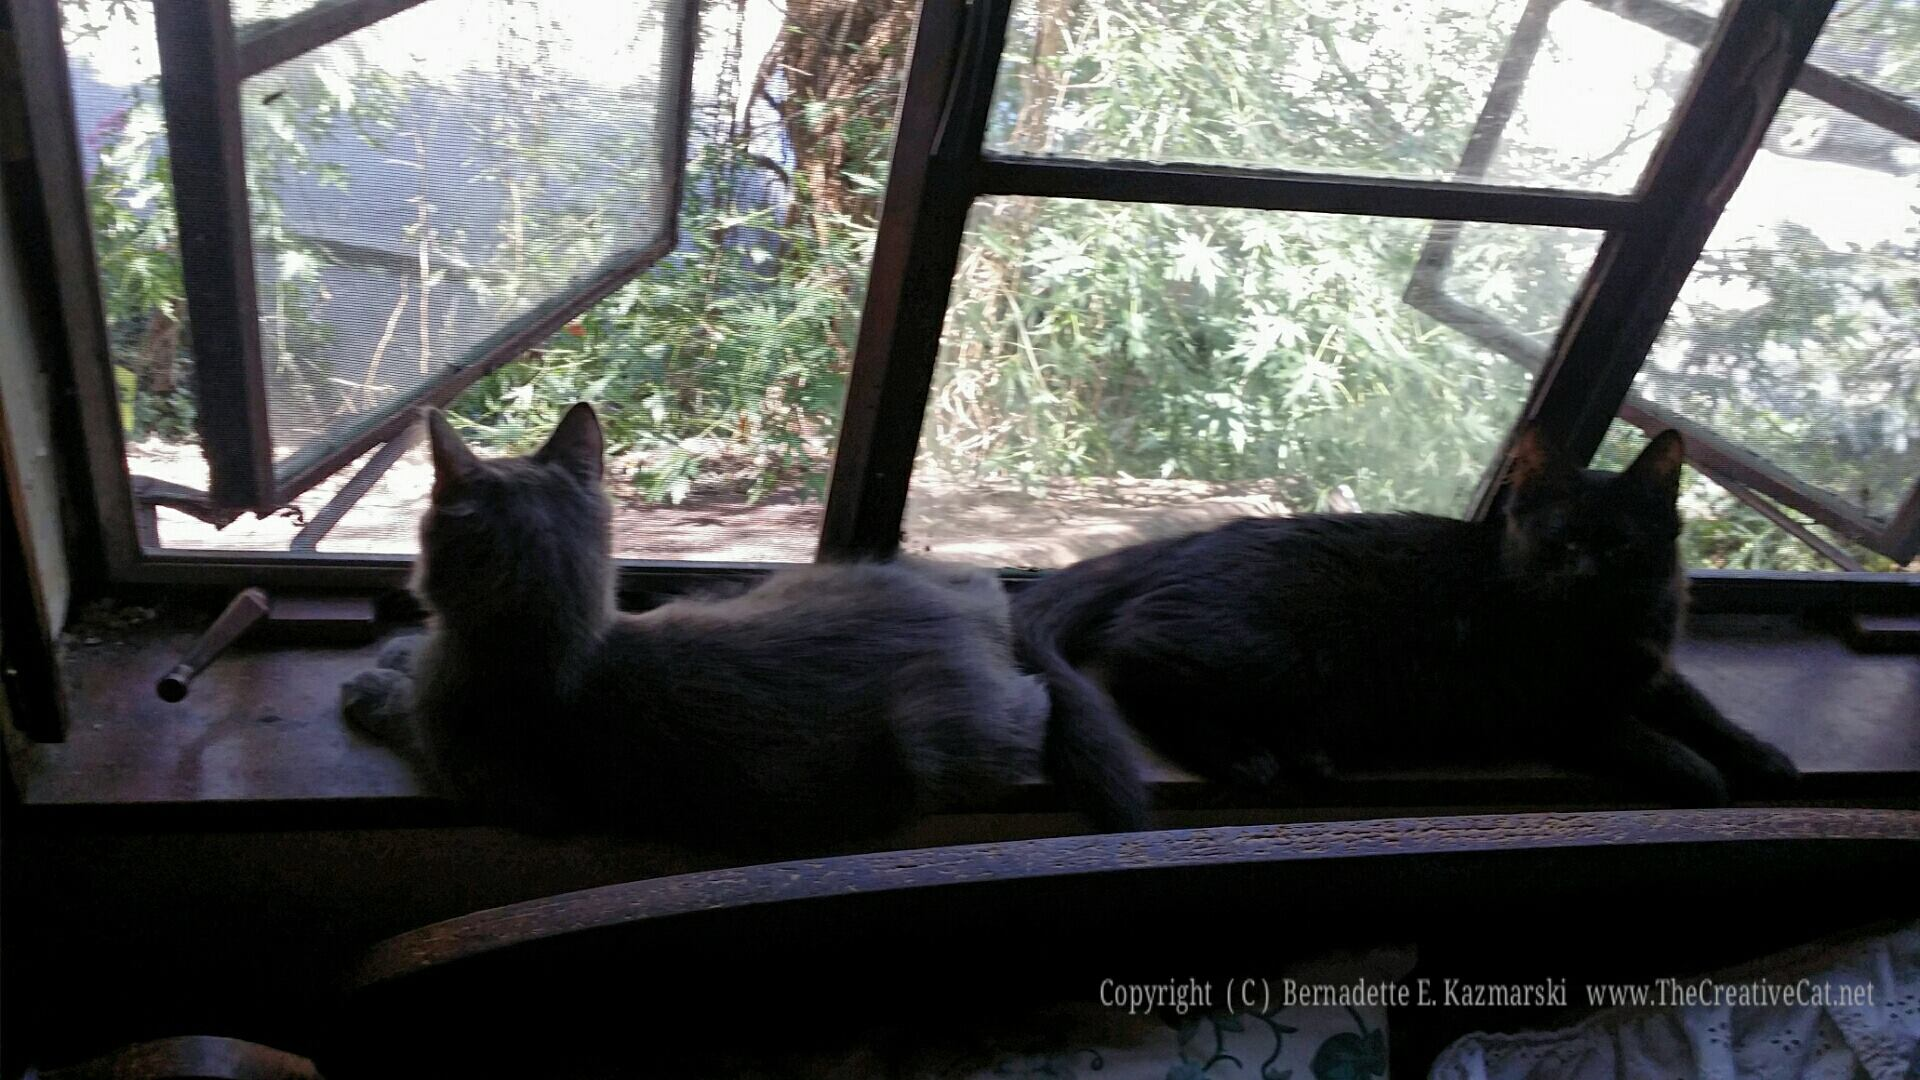 Theodore and Simon butt to butt on the windowsill.